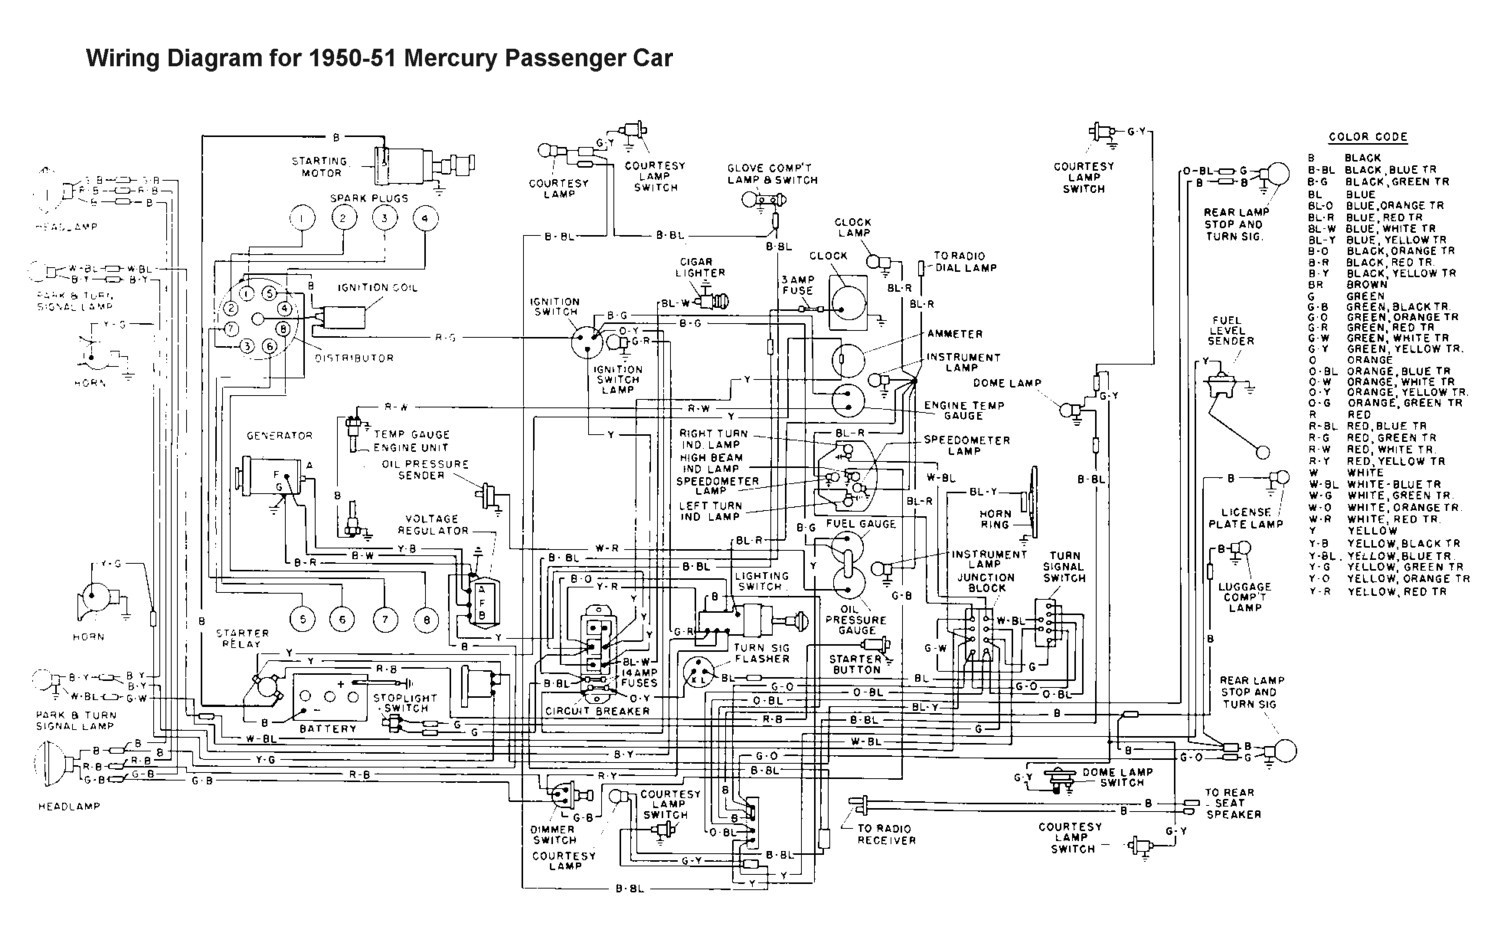 WRG-6981] Harley Davidson Wiring Schematic on